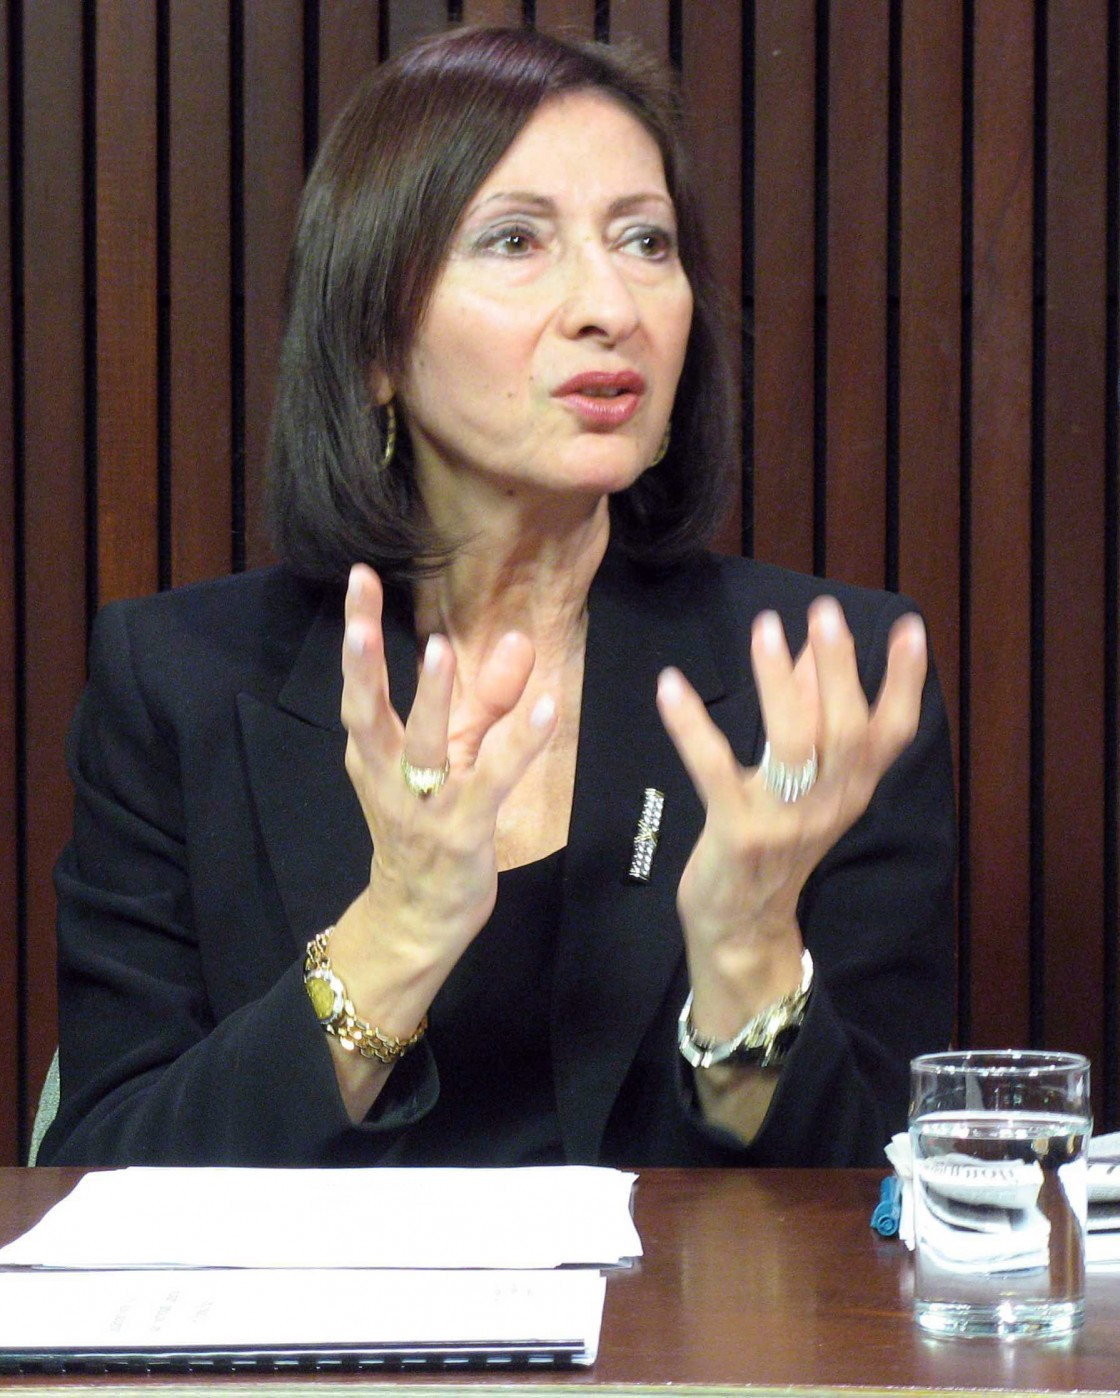 Ontario Privacy Commissioner Ann Cavoukian says this surveillance program 'doesn't pass the smell test.'.